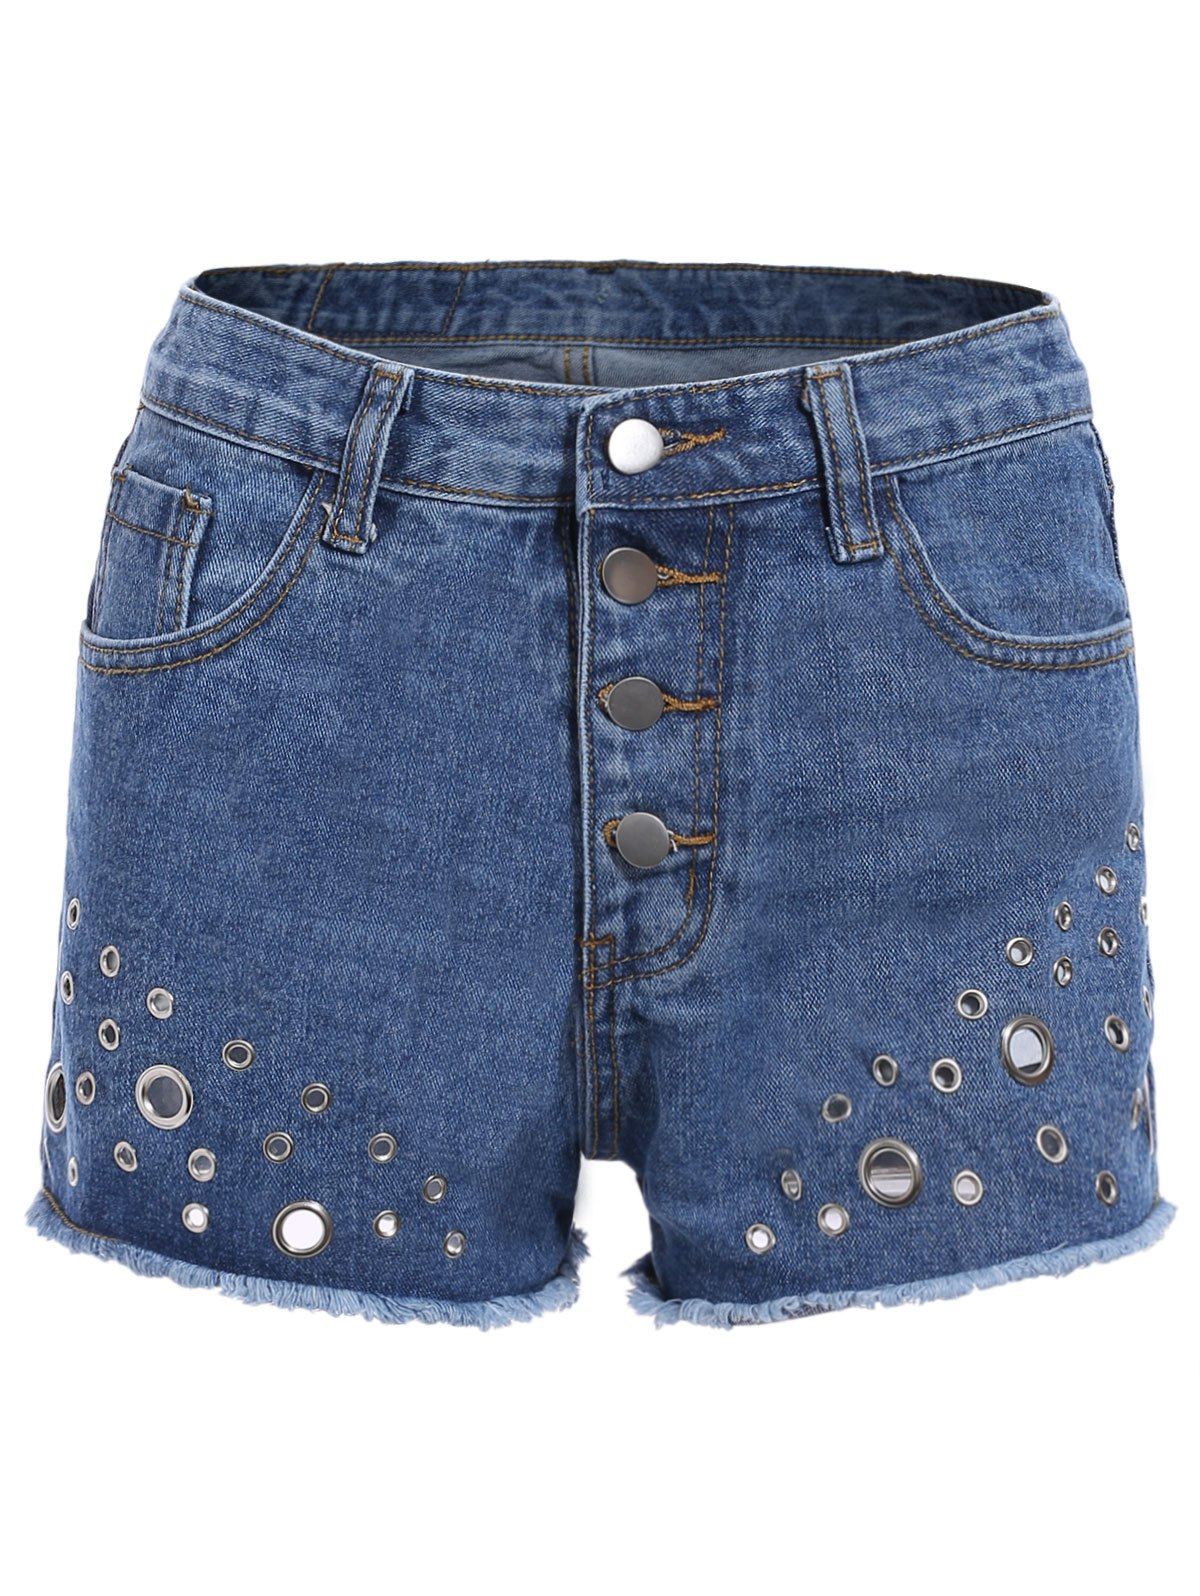 Trendy Women's Mid Waist Rivet Denim Shorts - DENIM BLUE ONE SIZE(FIT SIZE XS TO M)